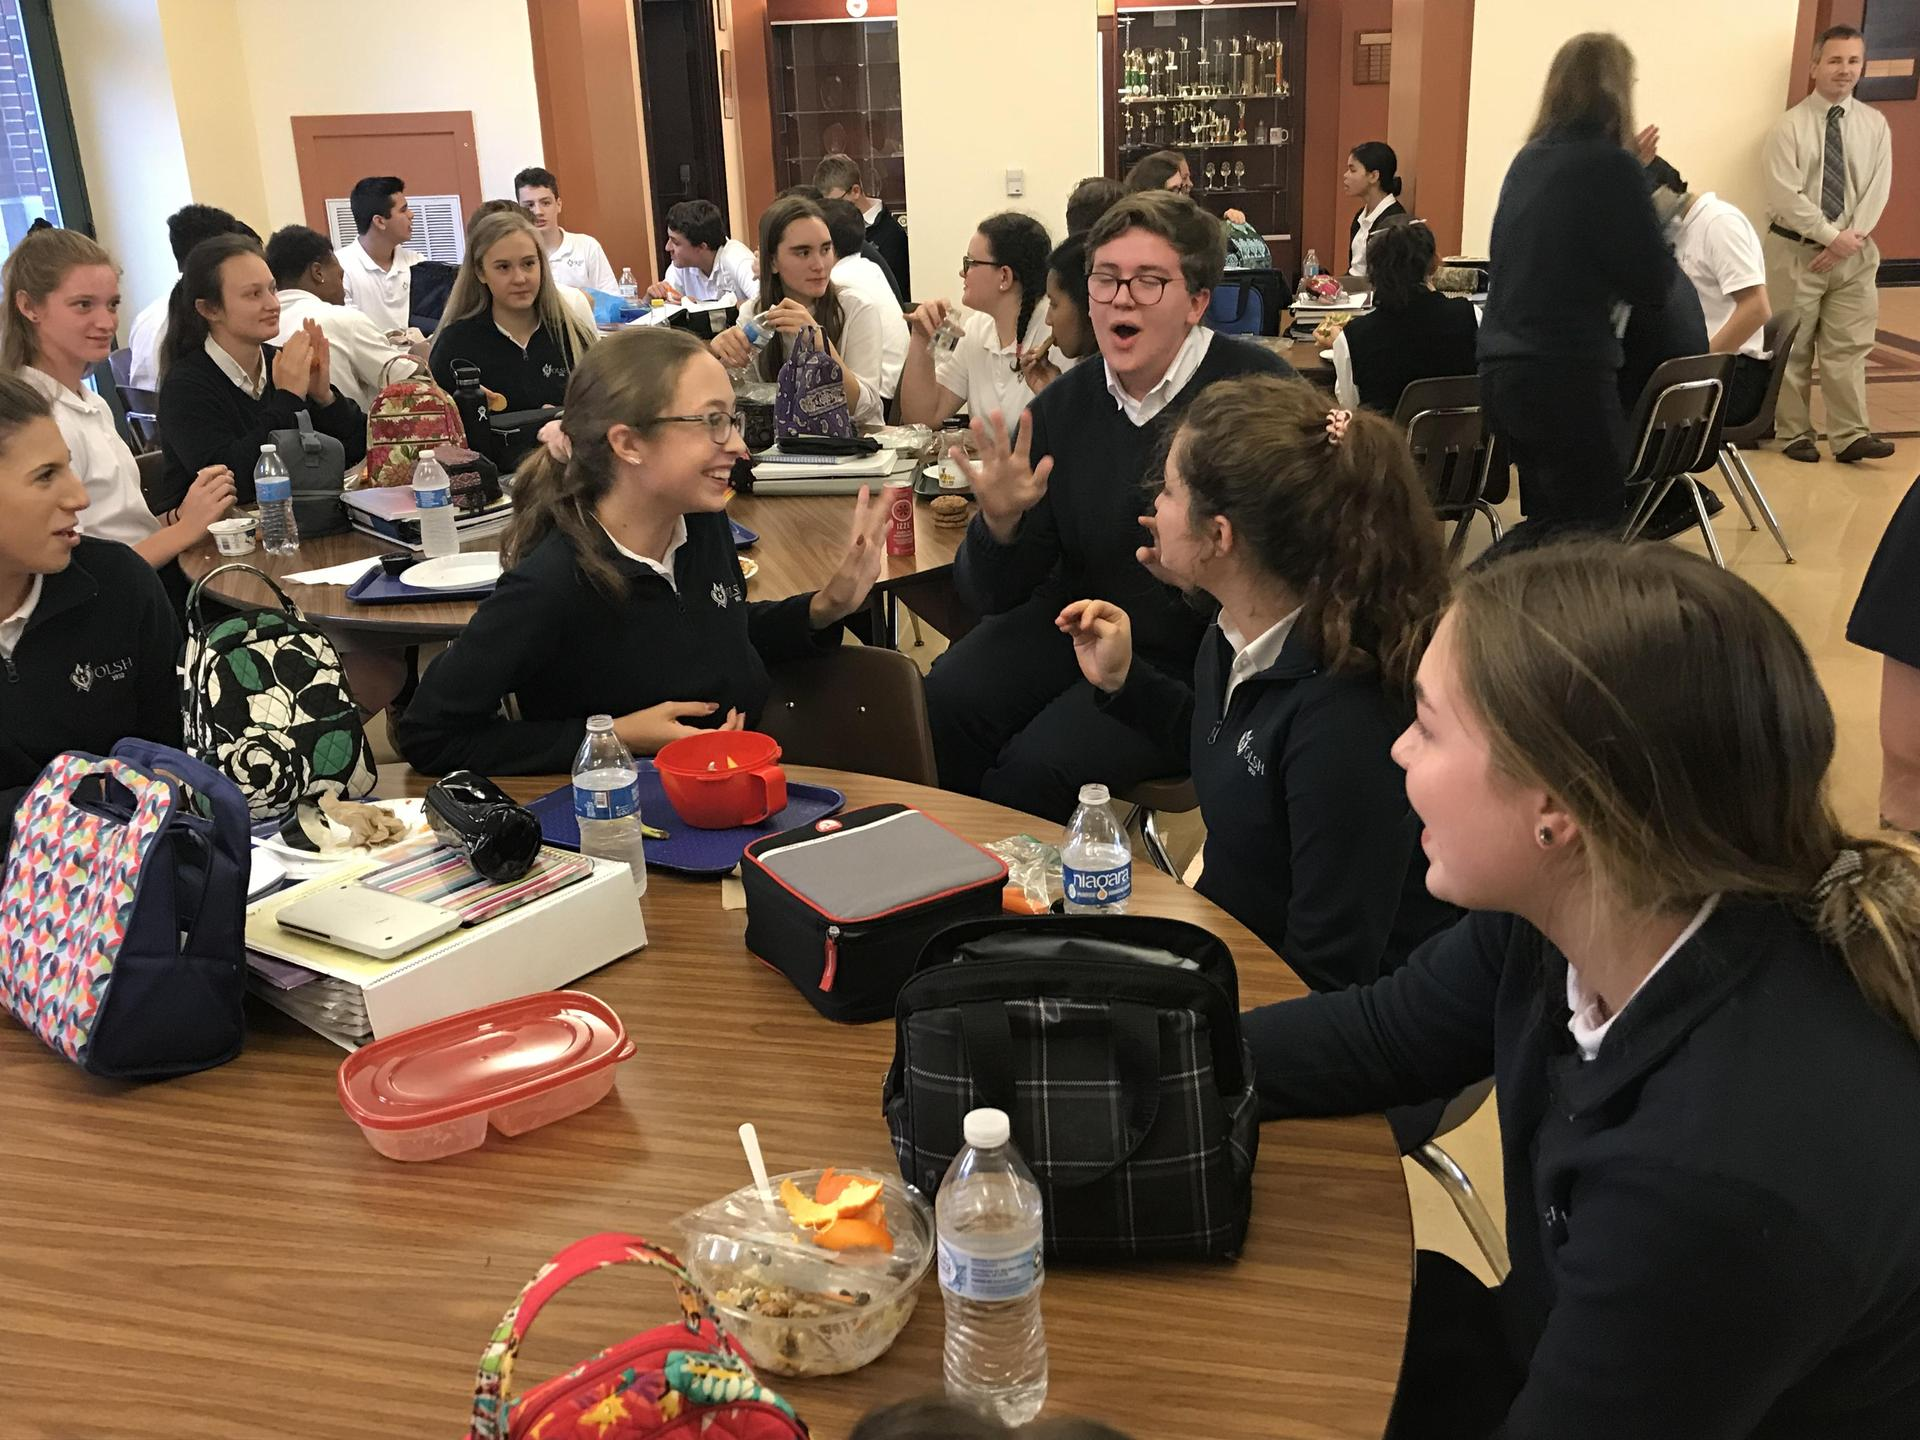 Brenna enjoys lunch with friends in the OLSH cafeteria.